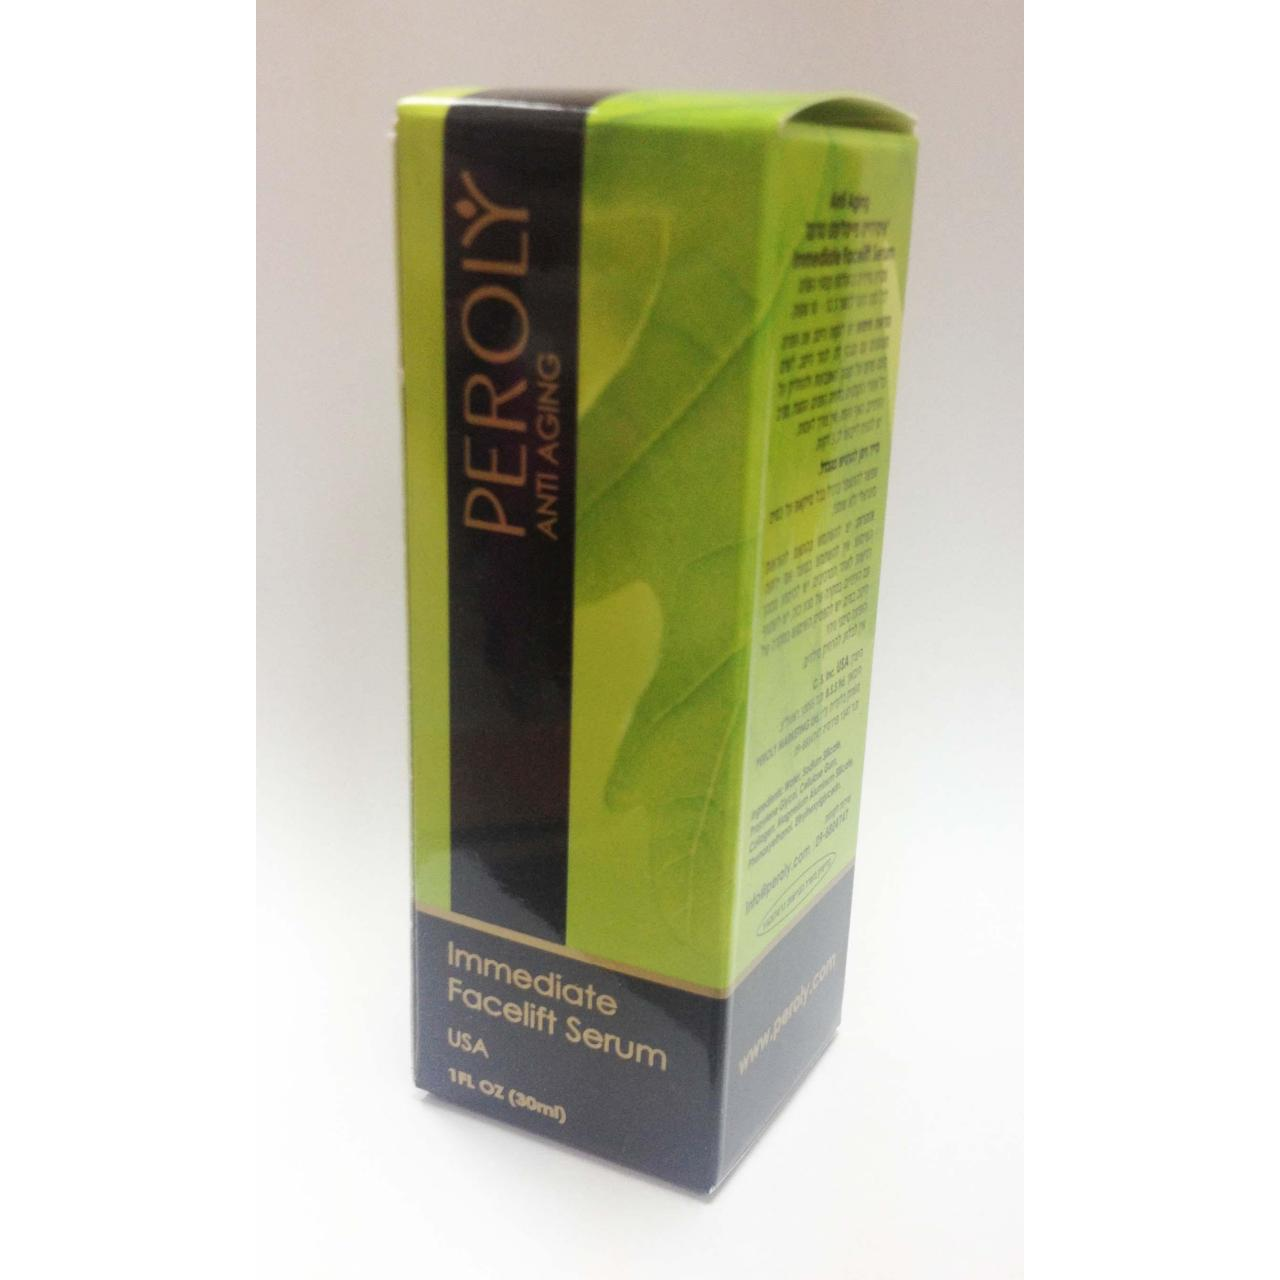 Peroly Immediate Facelift Serum Manufactures